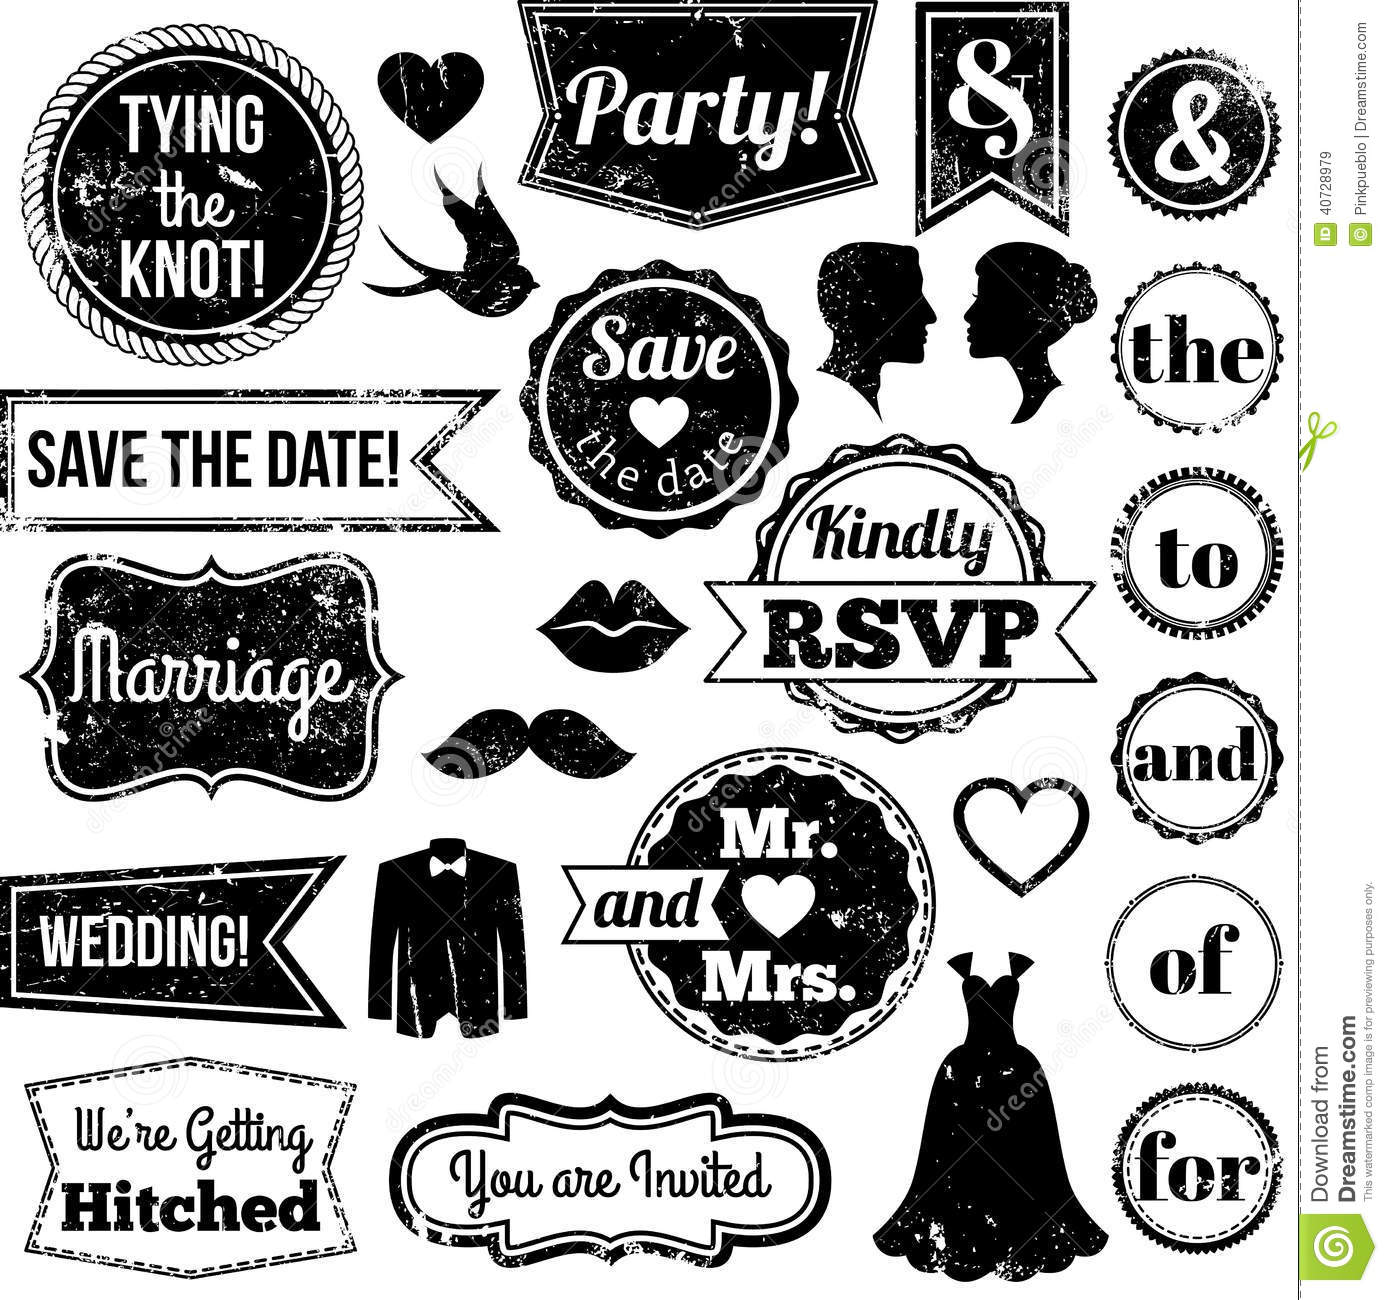 royalty free stock images vector collection vintage wedding themed badges stamps textured image wedding stamps Vector Collection of Vintage Wedding Themed Badges and Stamps